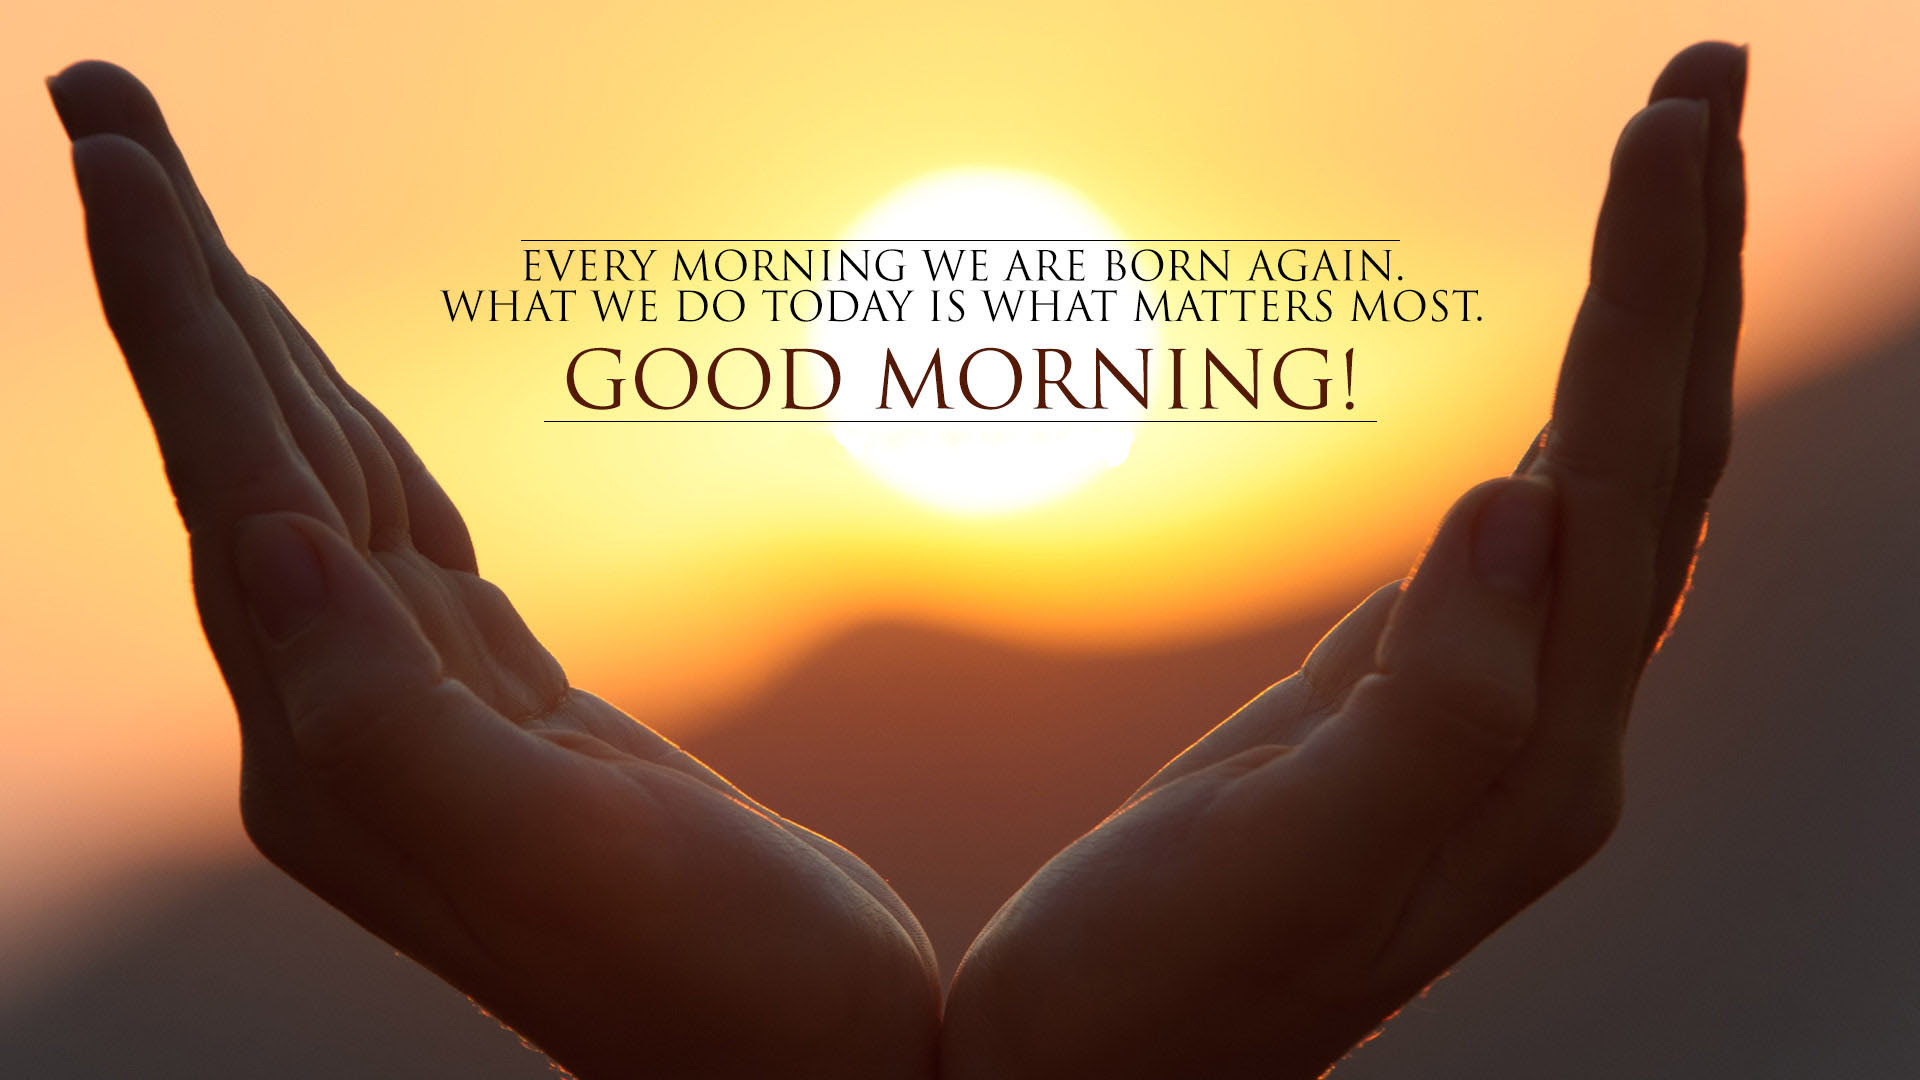 http://cdn.quotesgram.com/img/92/43/1287661454-Good-Morning-Nice-Quote-Wallpaper.jpg